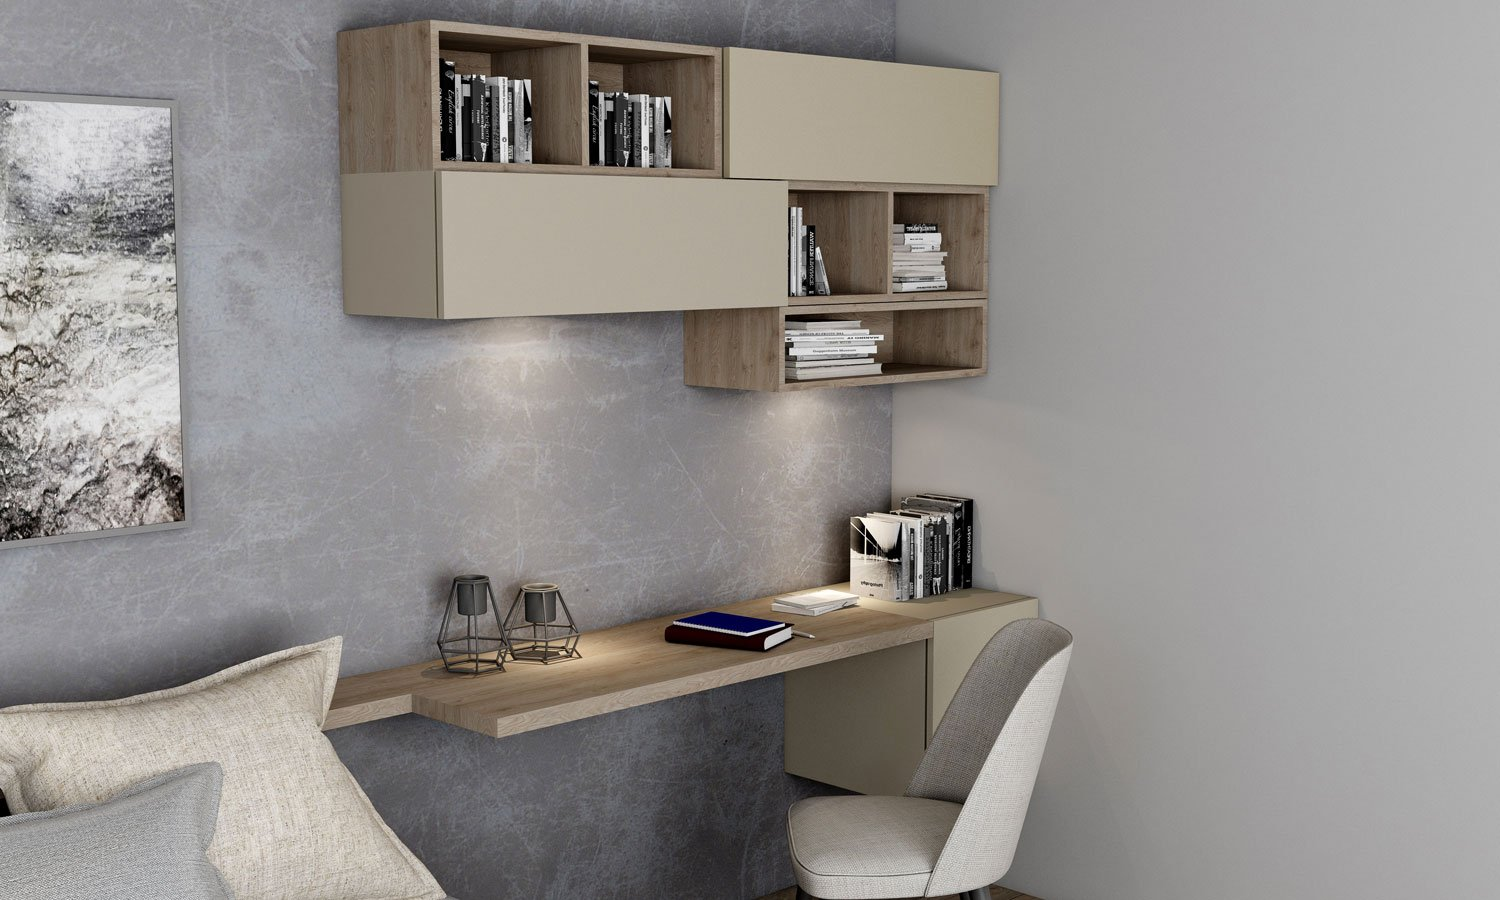 Desk & Study Unit Storage in Combination of Pebble grey and Cleaf Pembroke